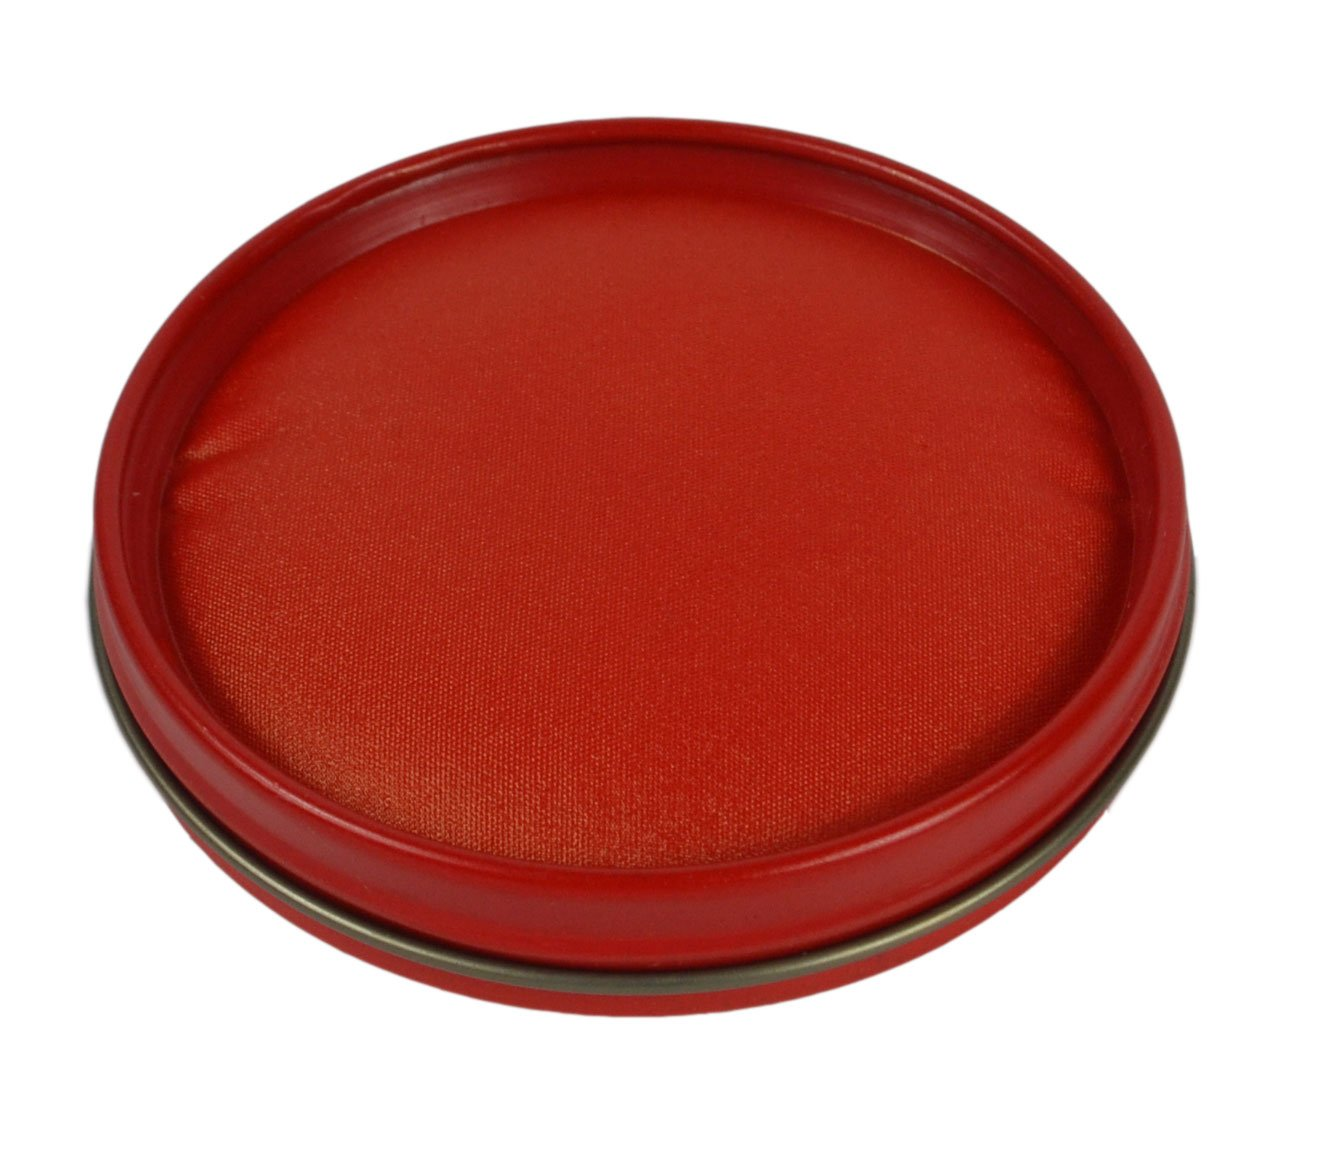 Calligraphy Stamp Seal Painting Red Ink Paste Chinese Yinni Pad (Red) spomei 5370548